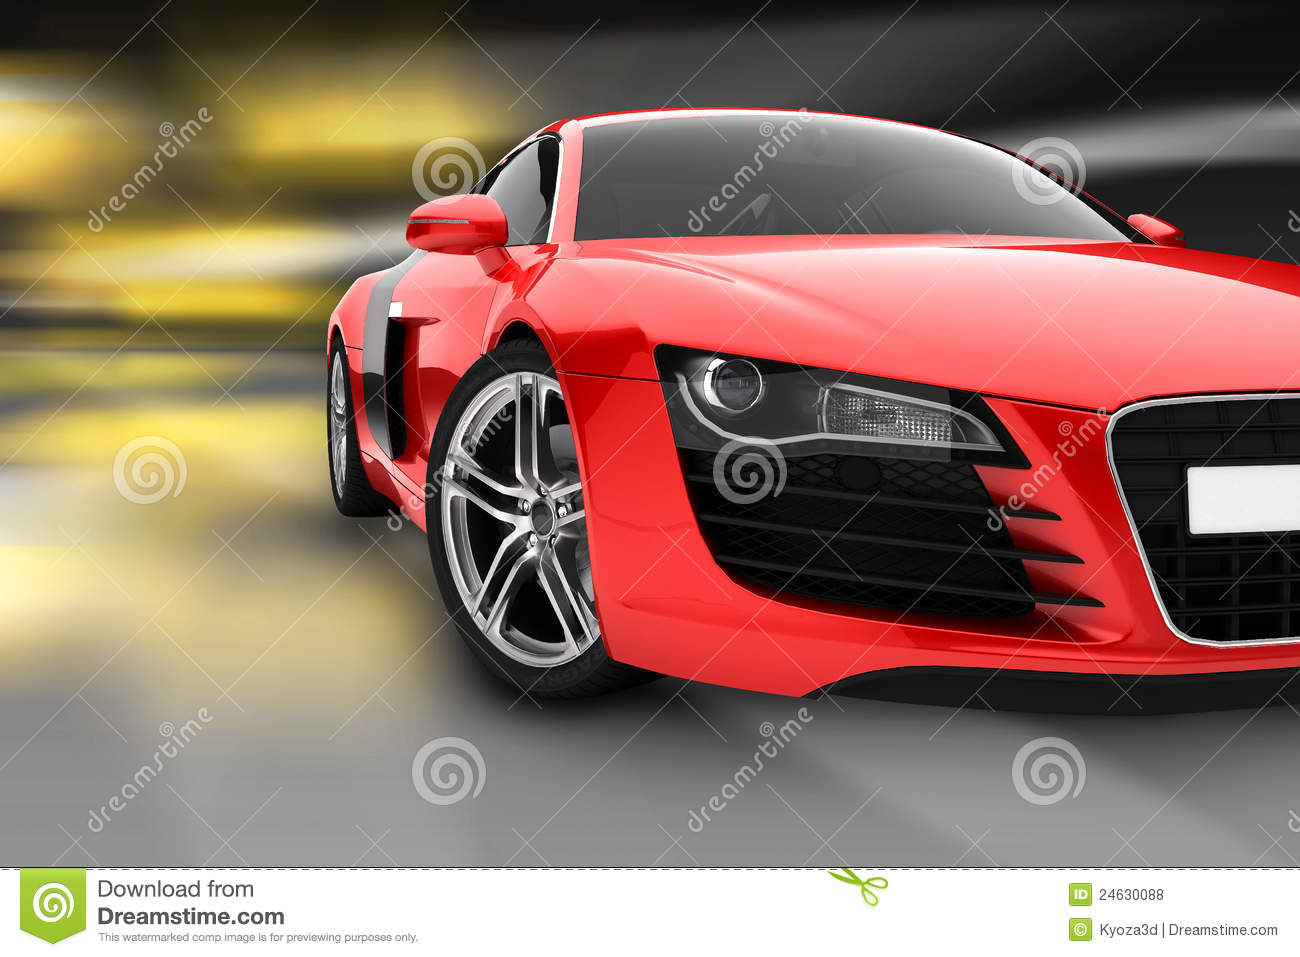 red sport car royalty free stock photos image 24630088. Black Bedroom Furniture Sets. Home Design Ideas